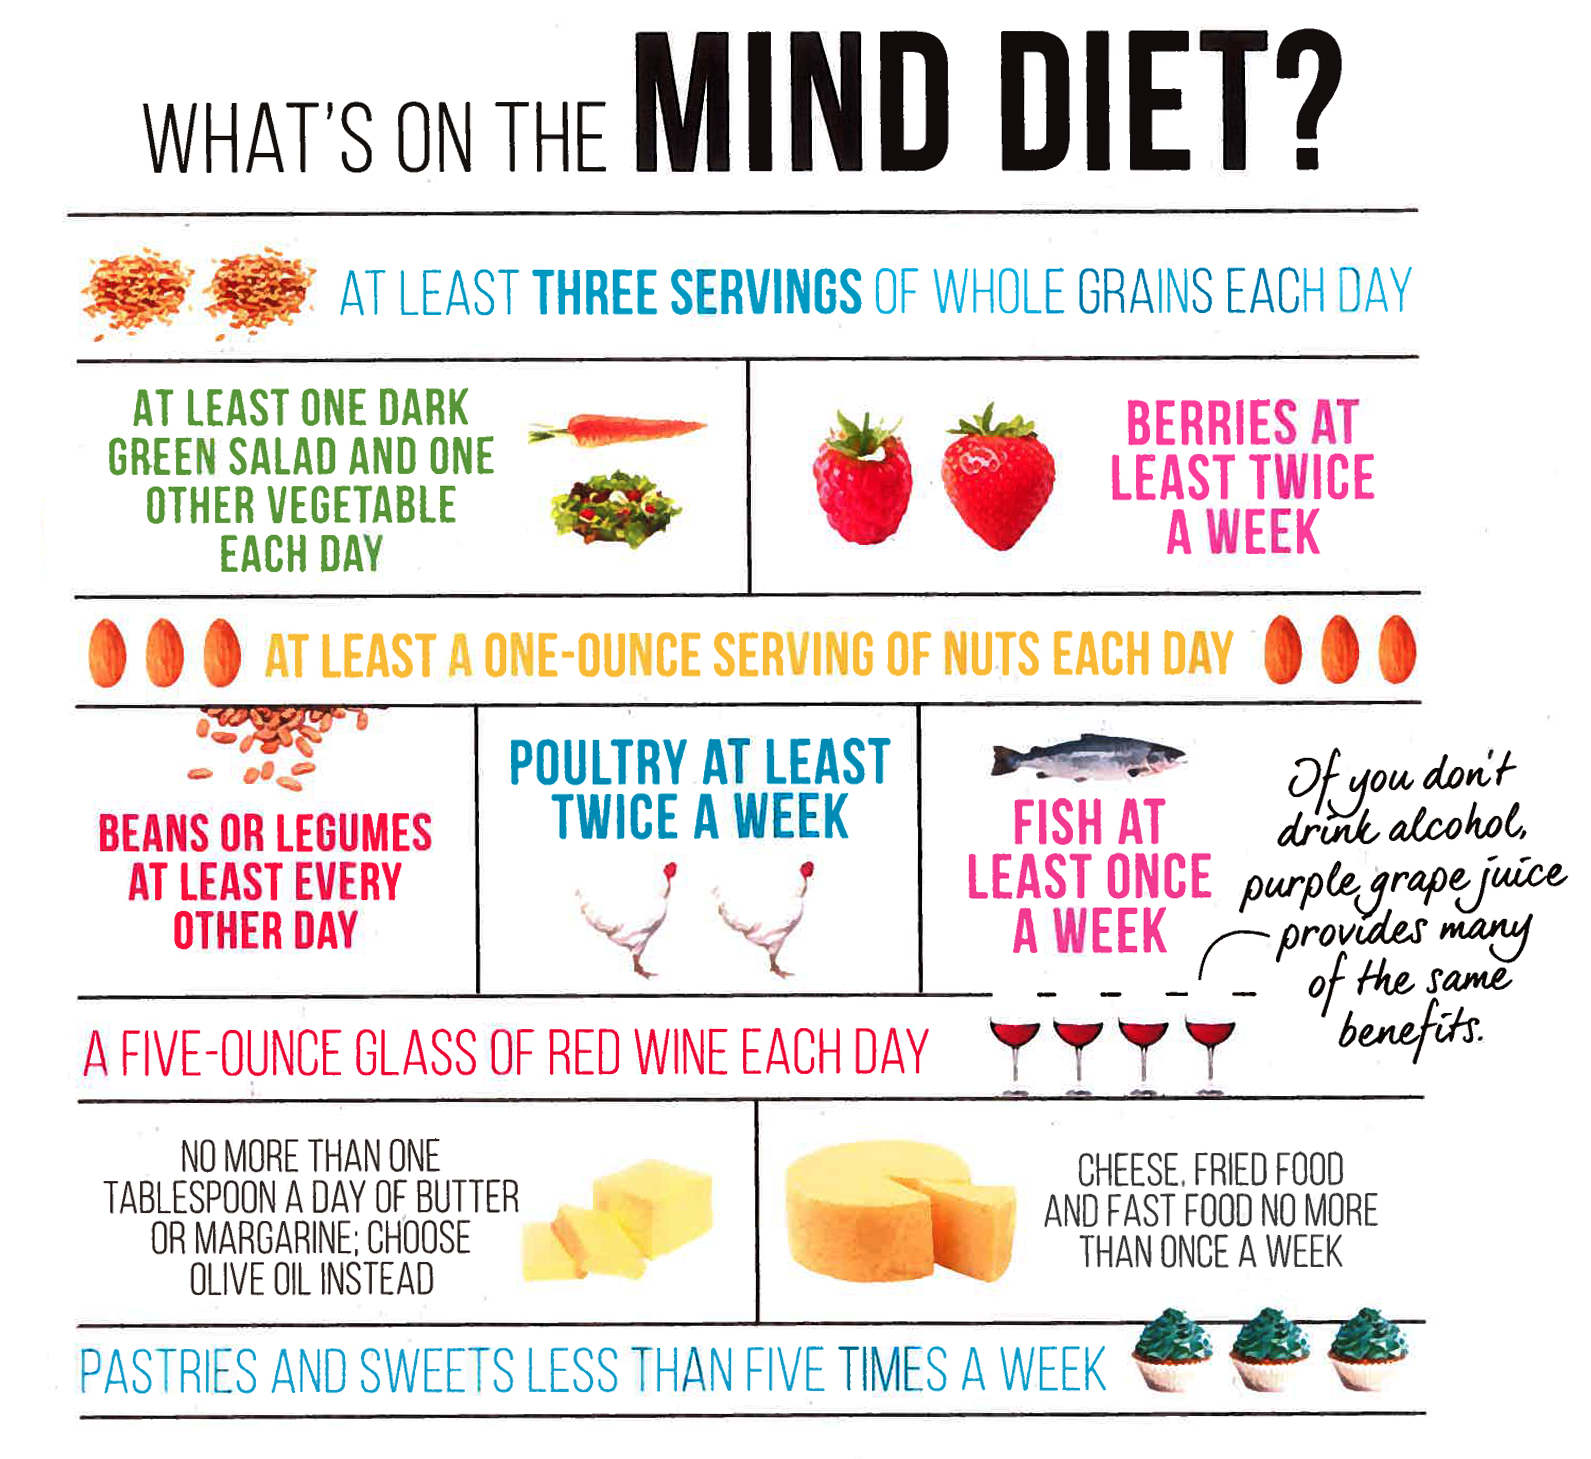 MIND-Diet-Foods.jpg